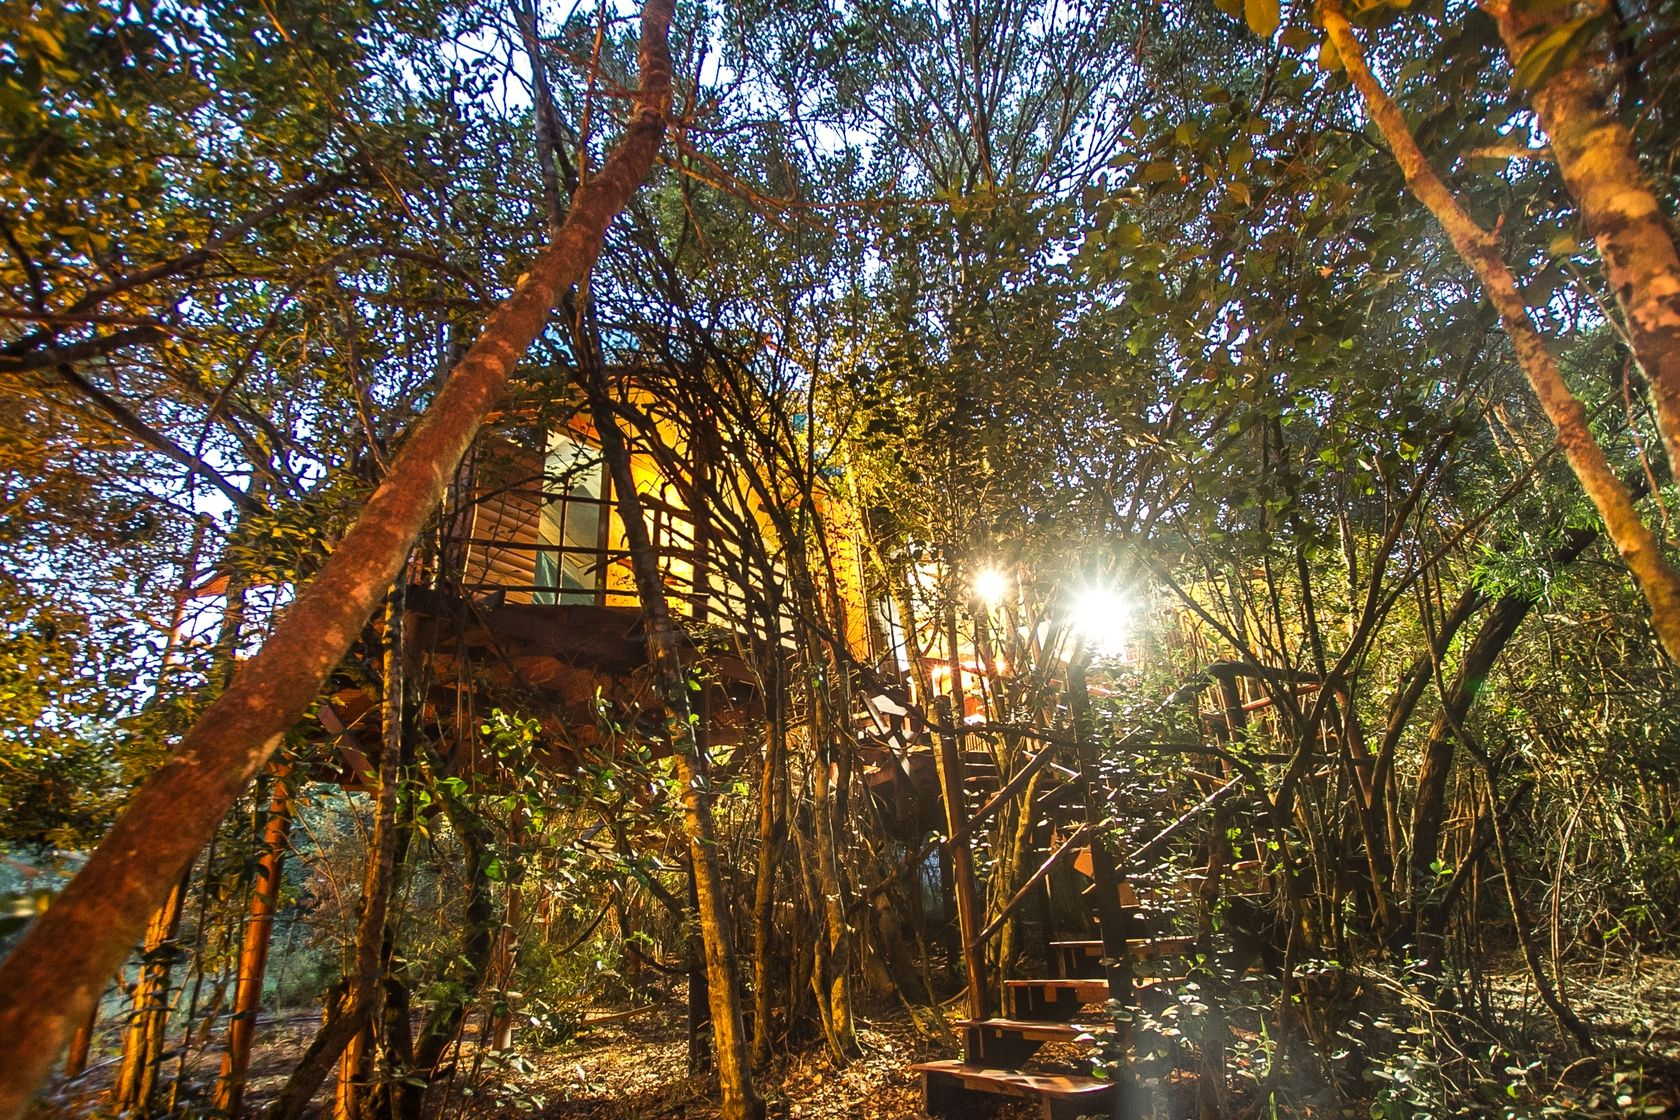 Teniqua Treetops is a nature lovers unique tree house eco